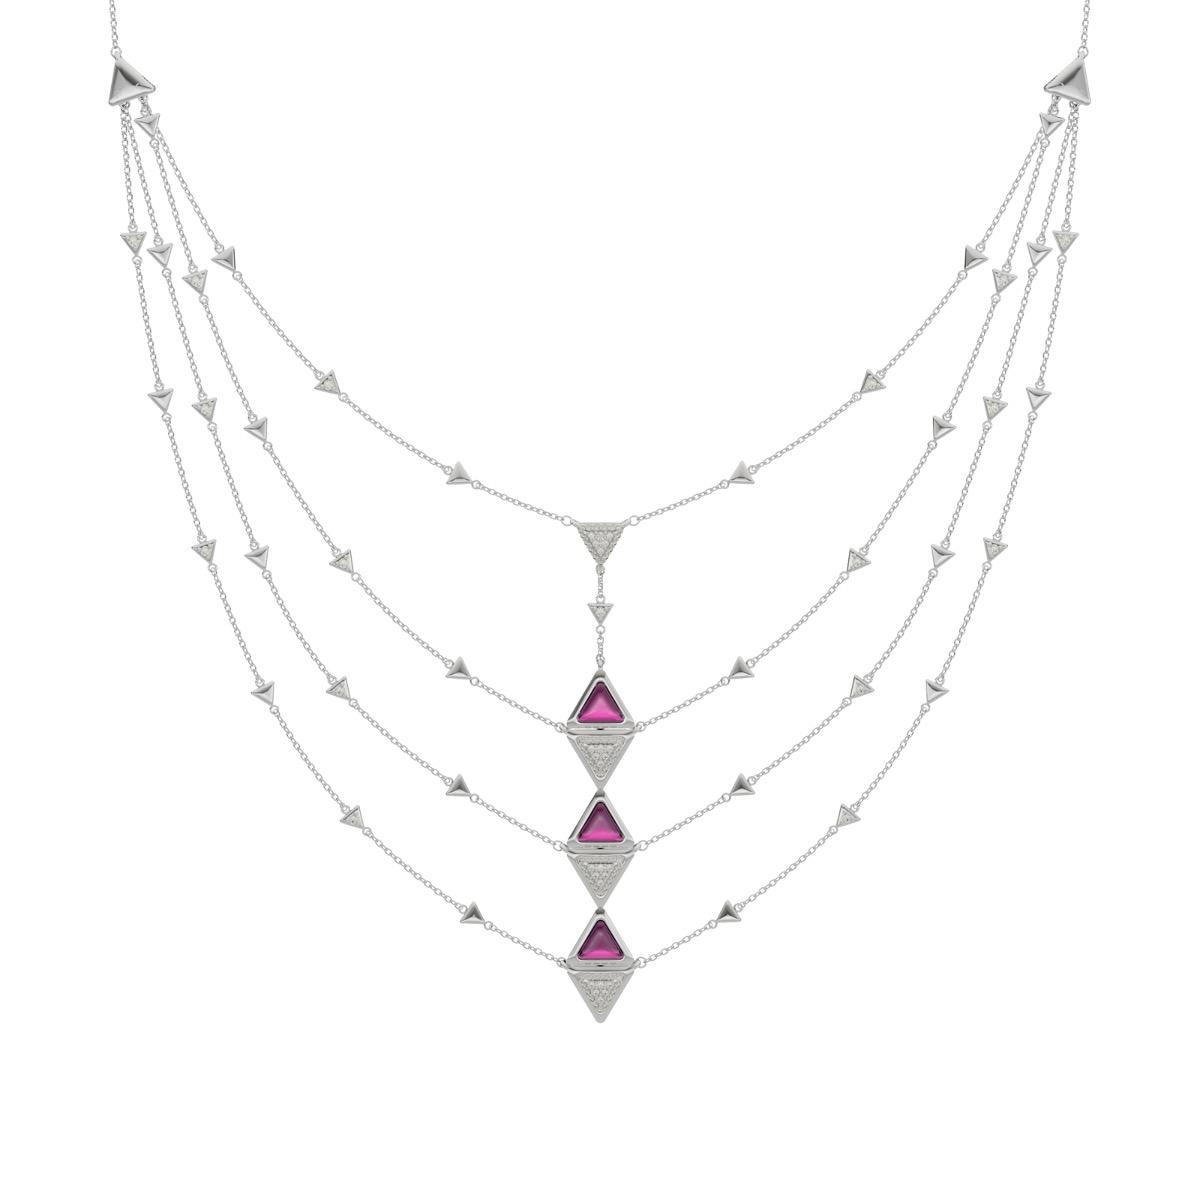 Necklace Multi Mirror Exquisite White Gold Pink Garnet and Diamonds